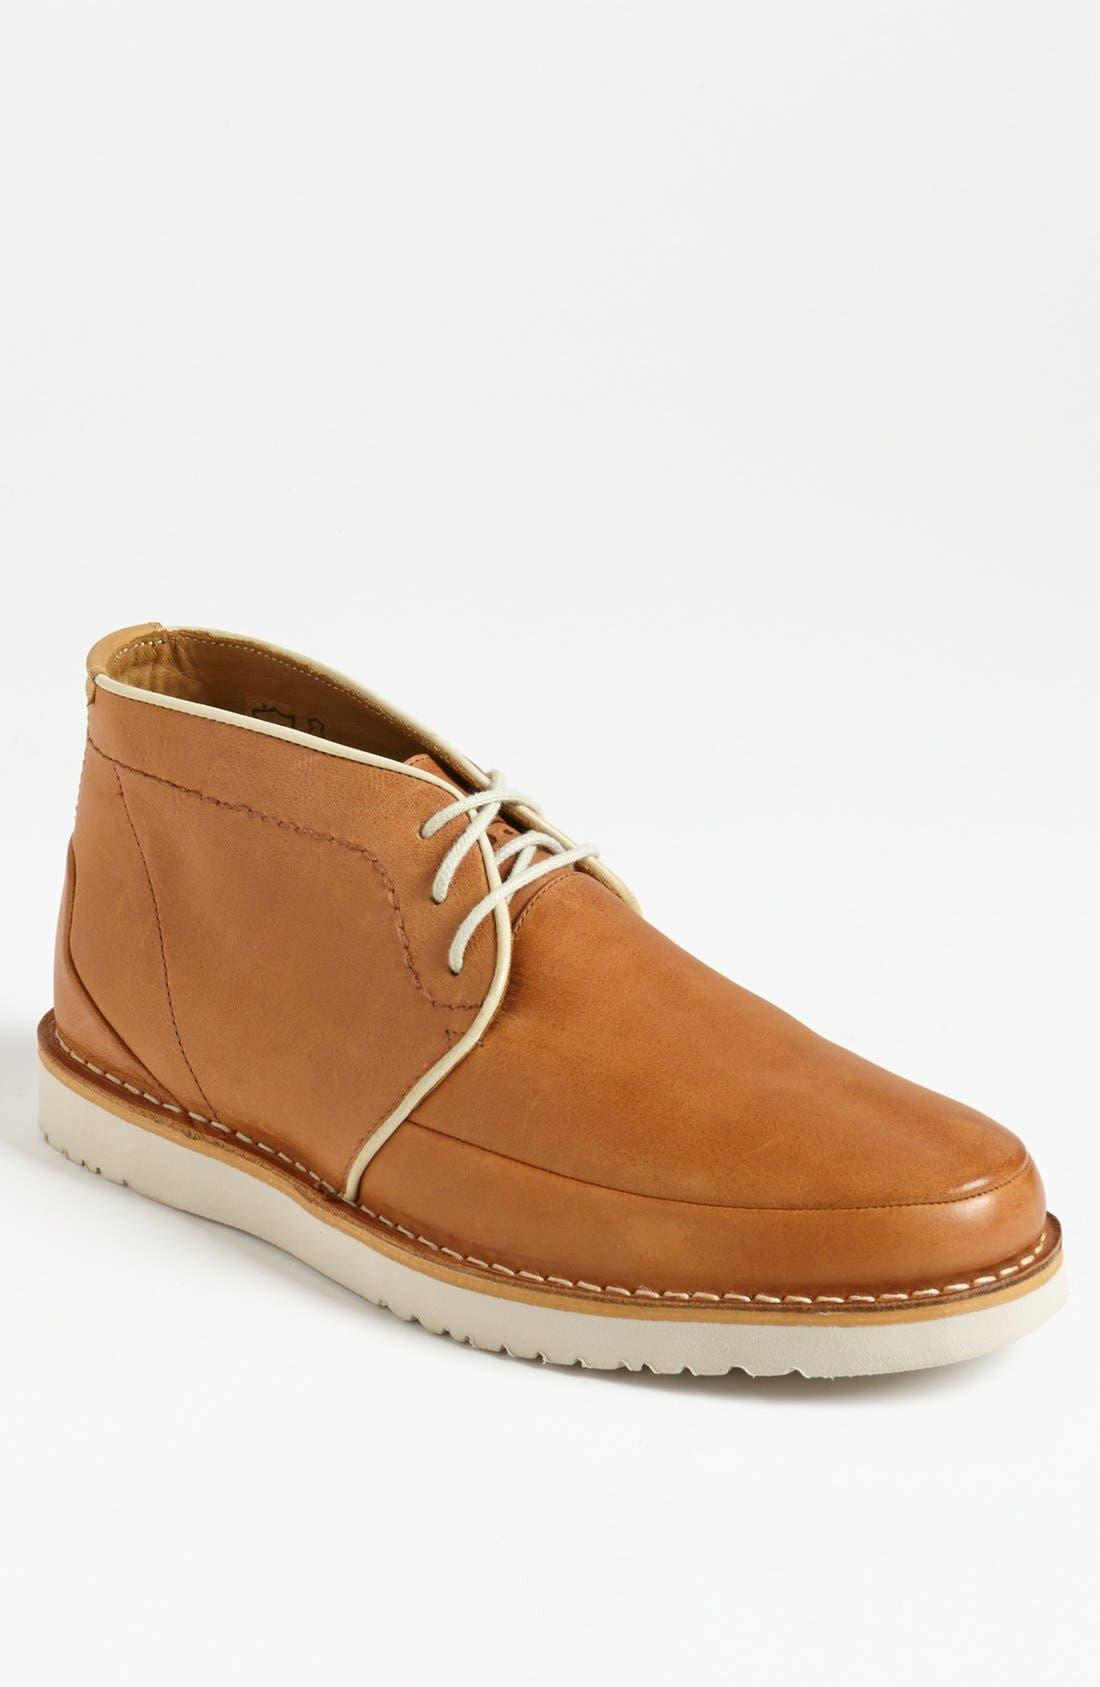 Main Image - J SHOES 'Selby' Chukka Boot